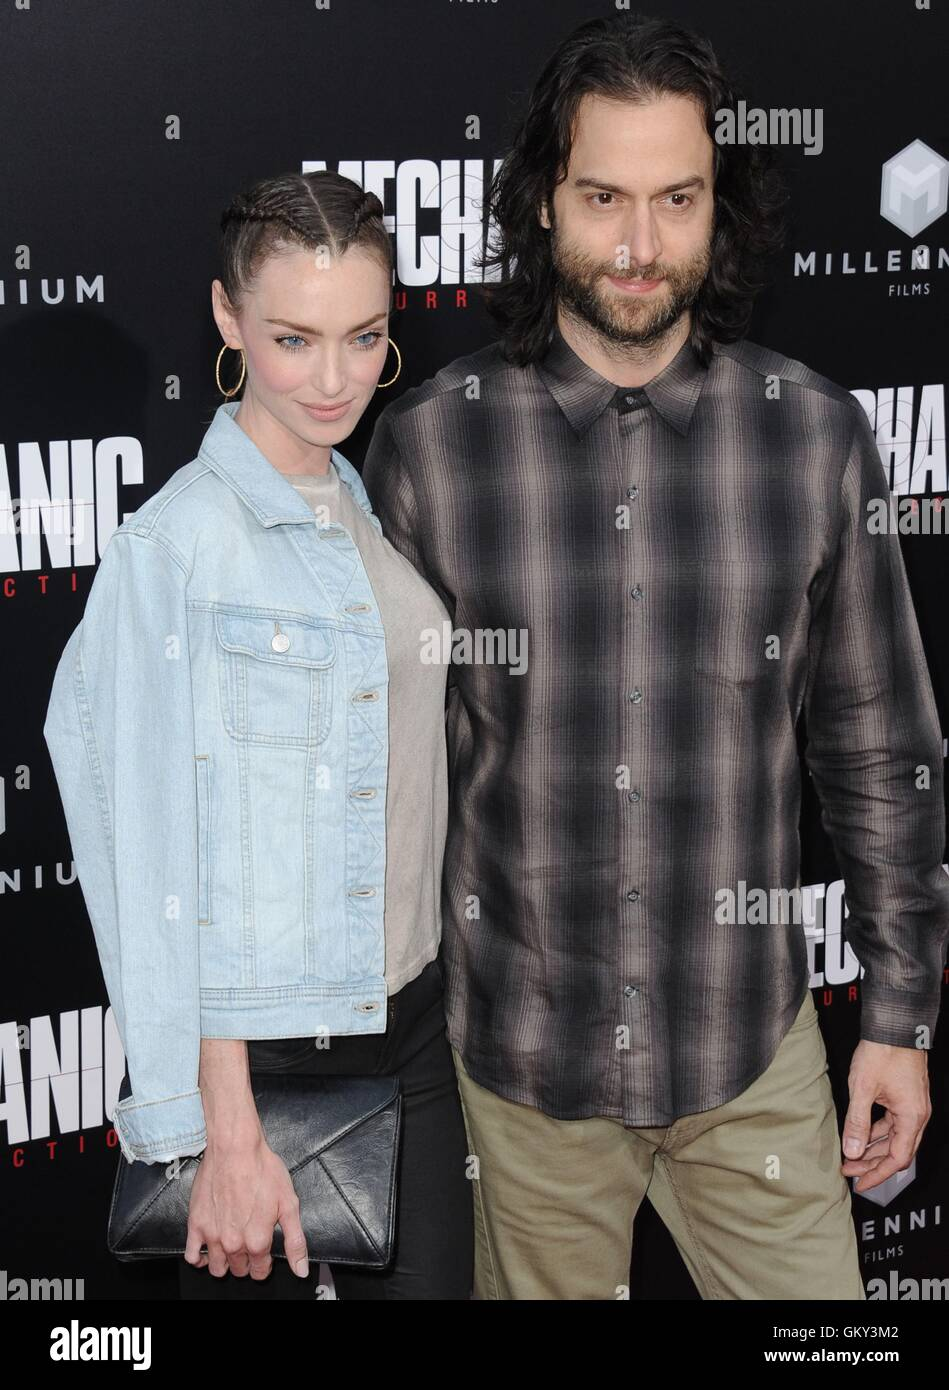 Hollywood, CA. 22nd Aug, 2016. Cassi Colvin, Chris D'Elia at arrivals for MECHANIC: RESURRECTION Premiere, Arclight - Stock Image